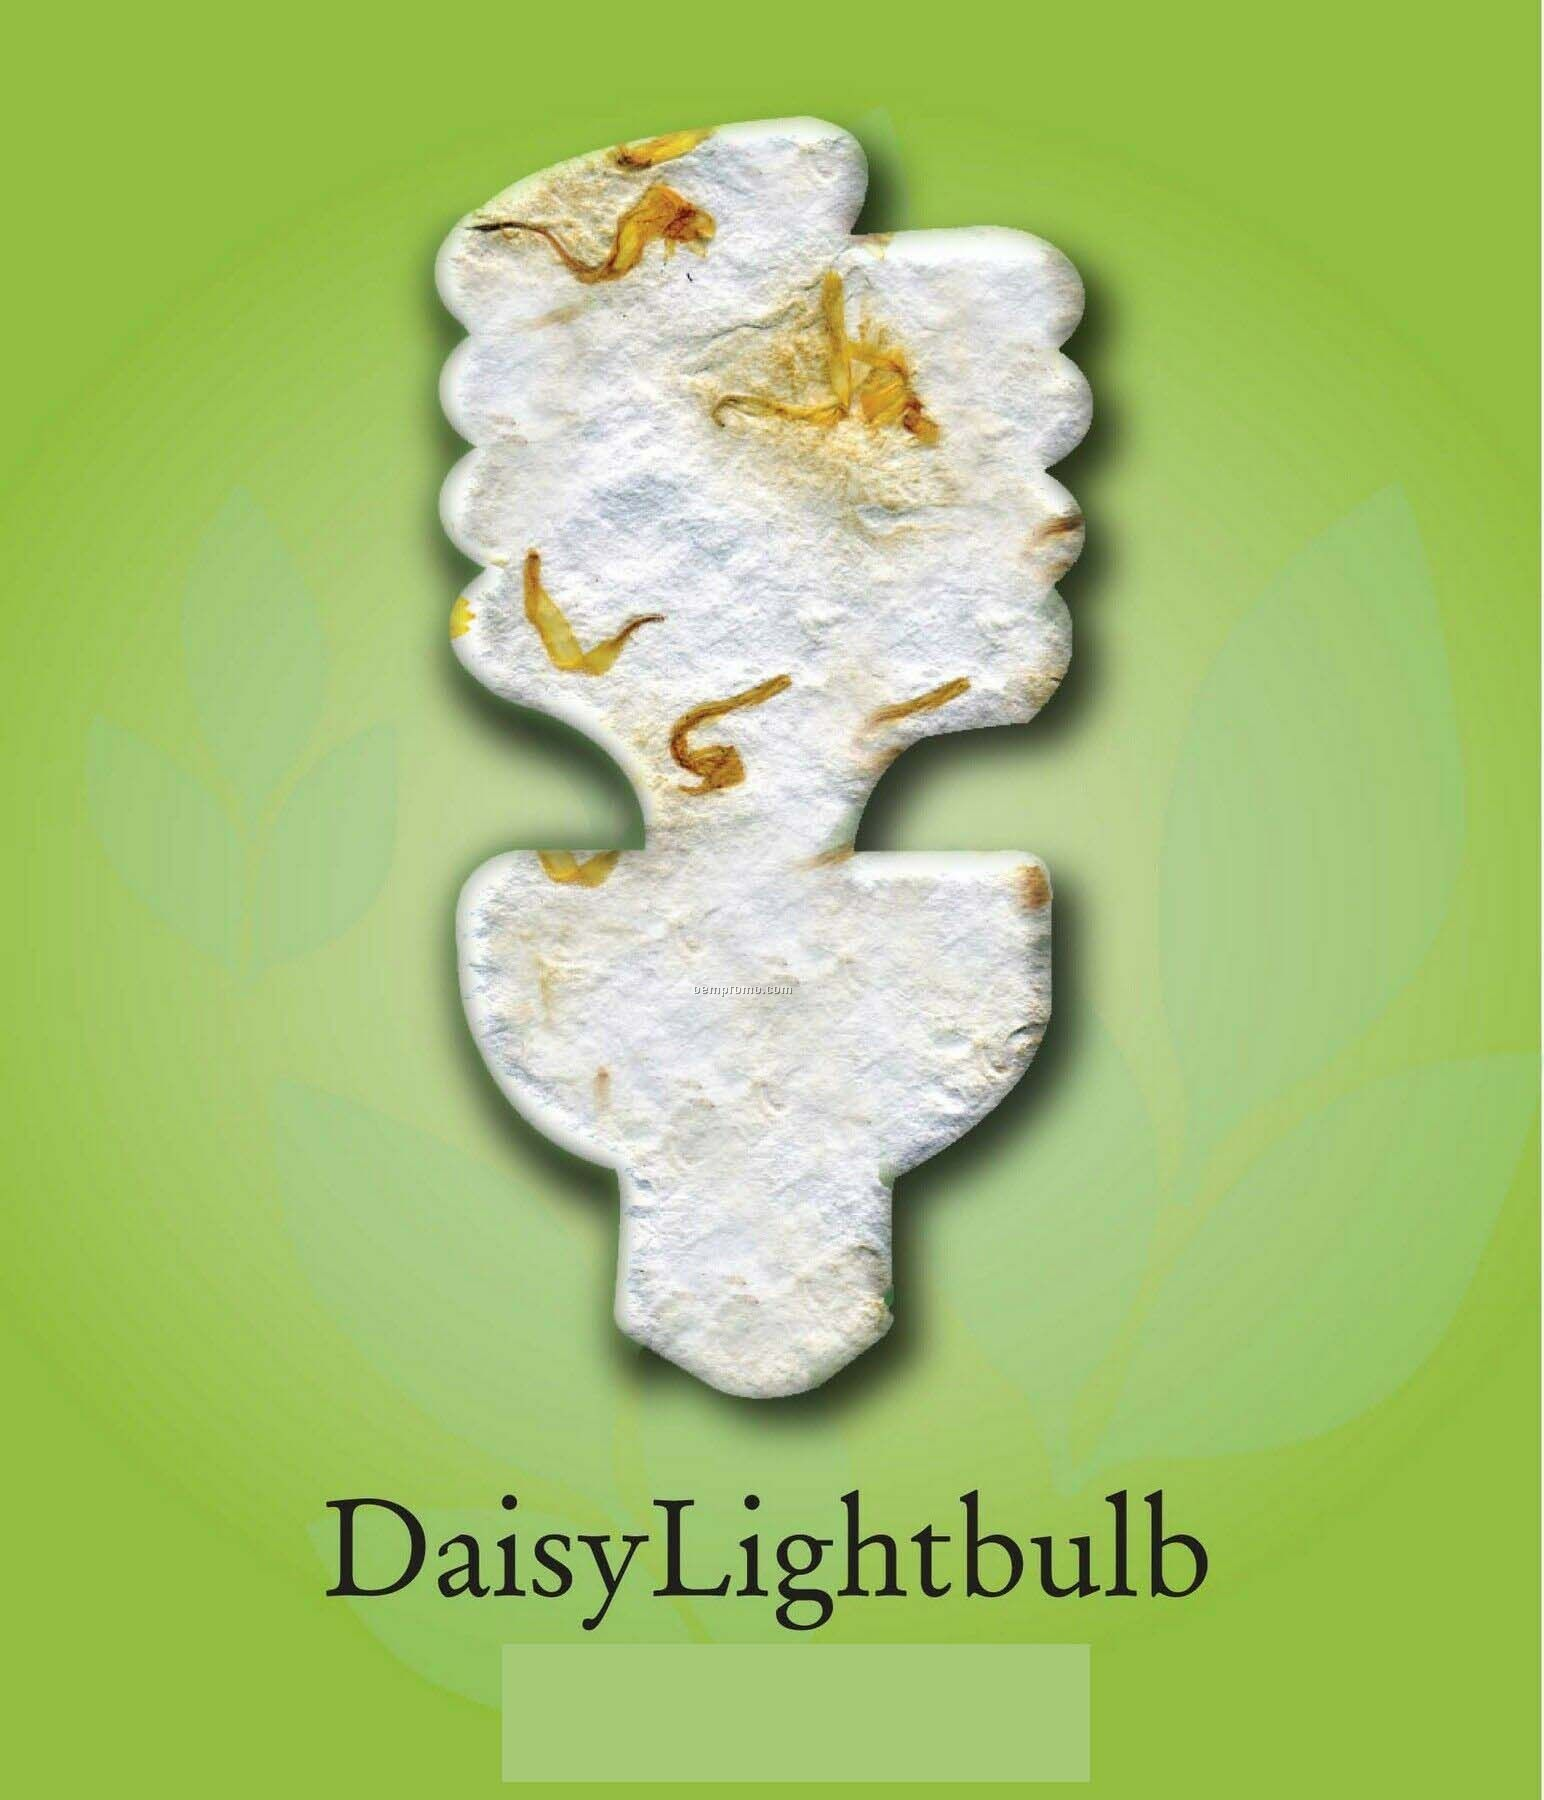 Daisy Lightbulb Ornament With Embedded Seed